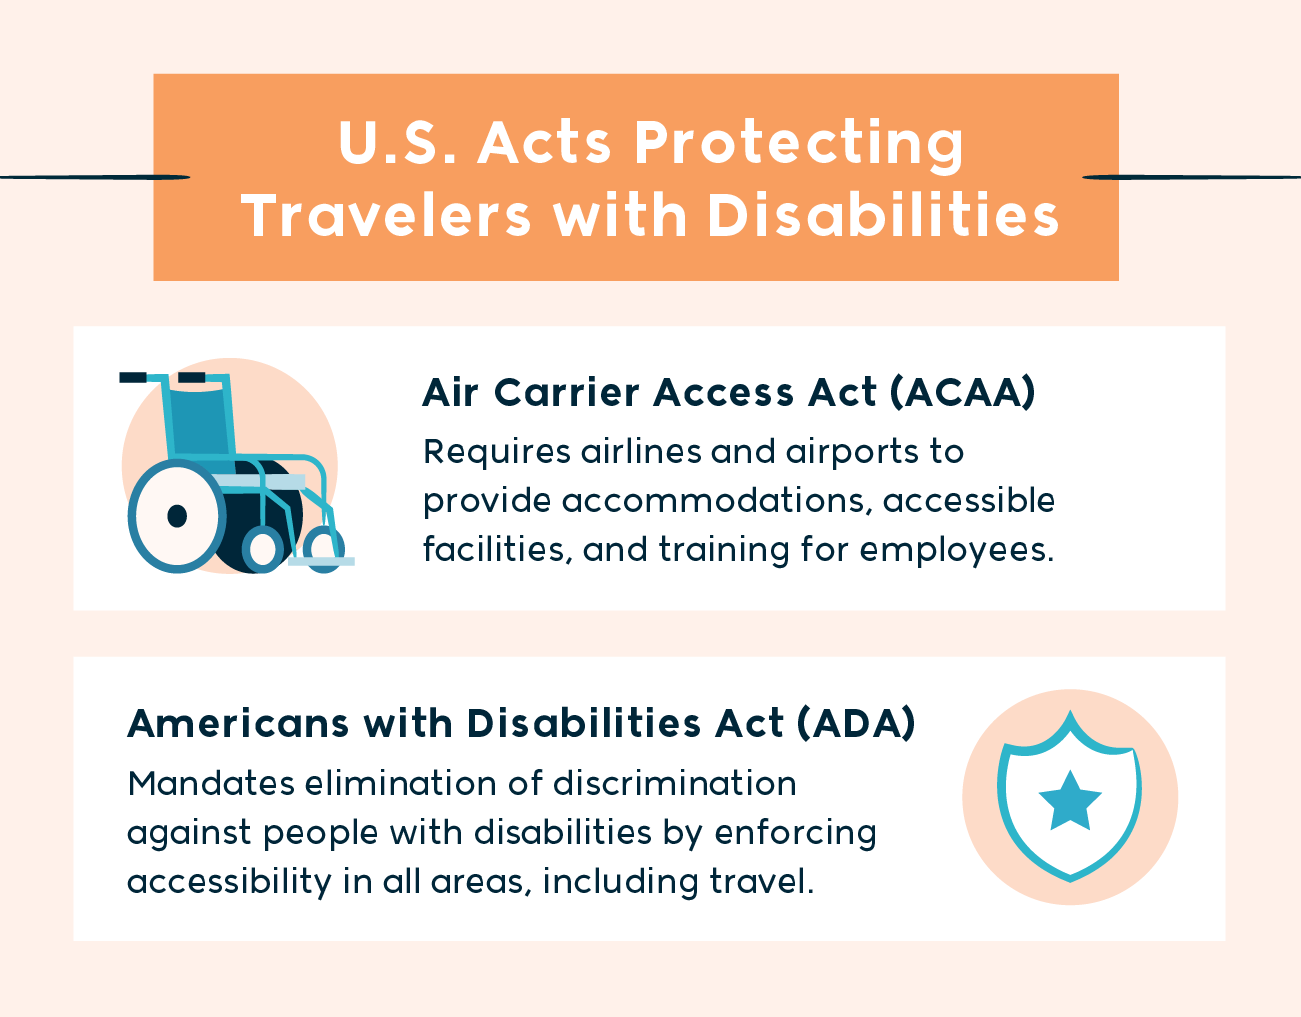 U.S. acts protecting travelers with disabilities